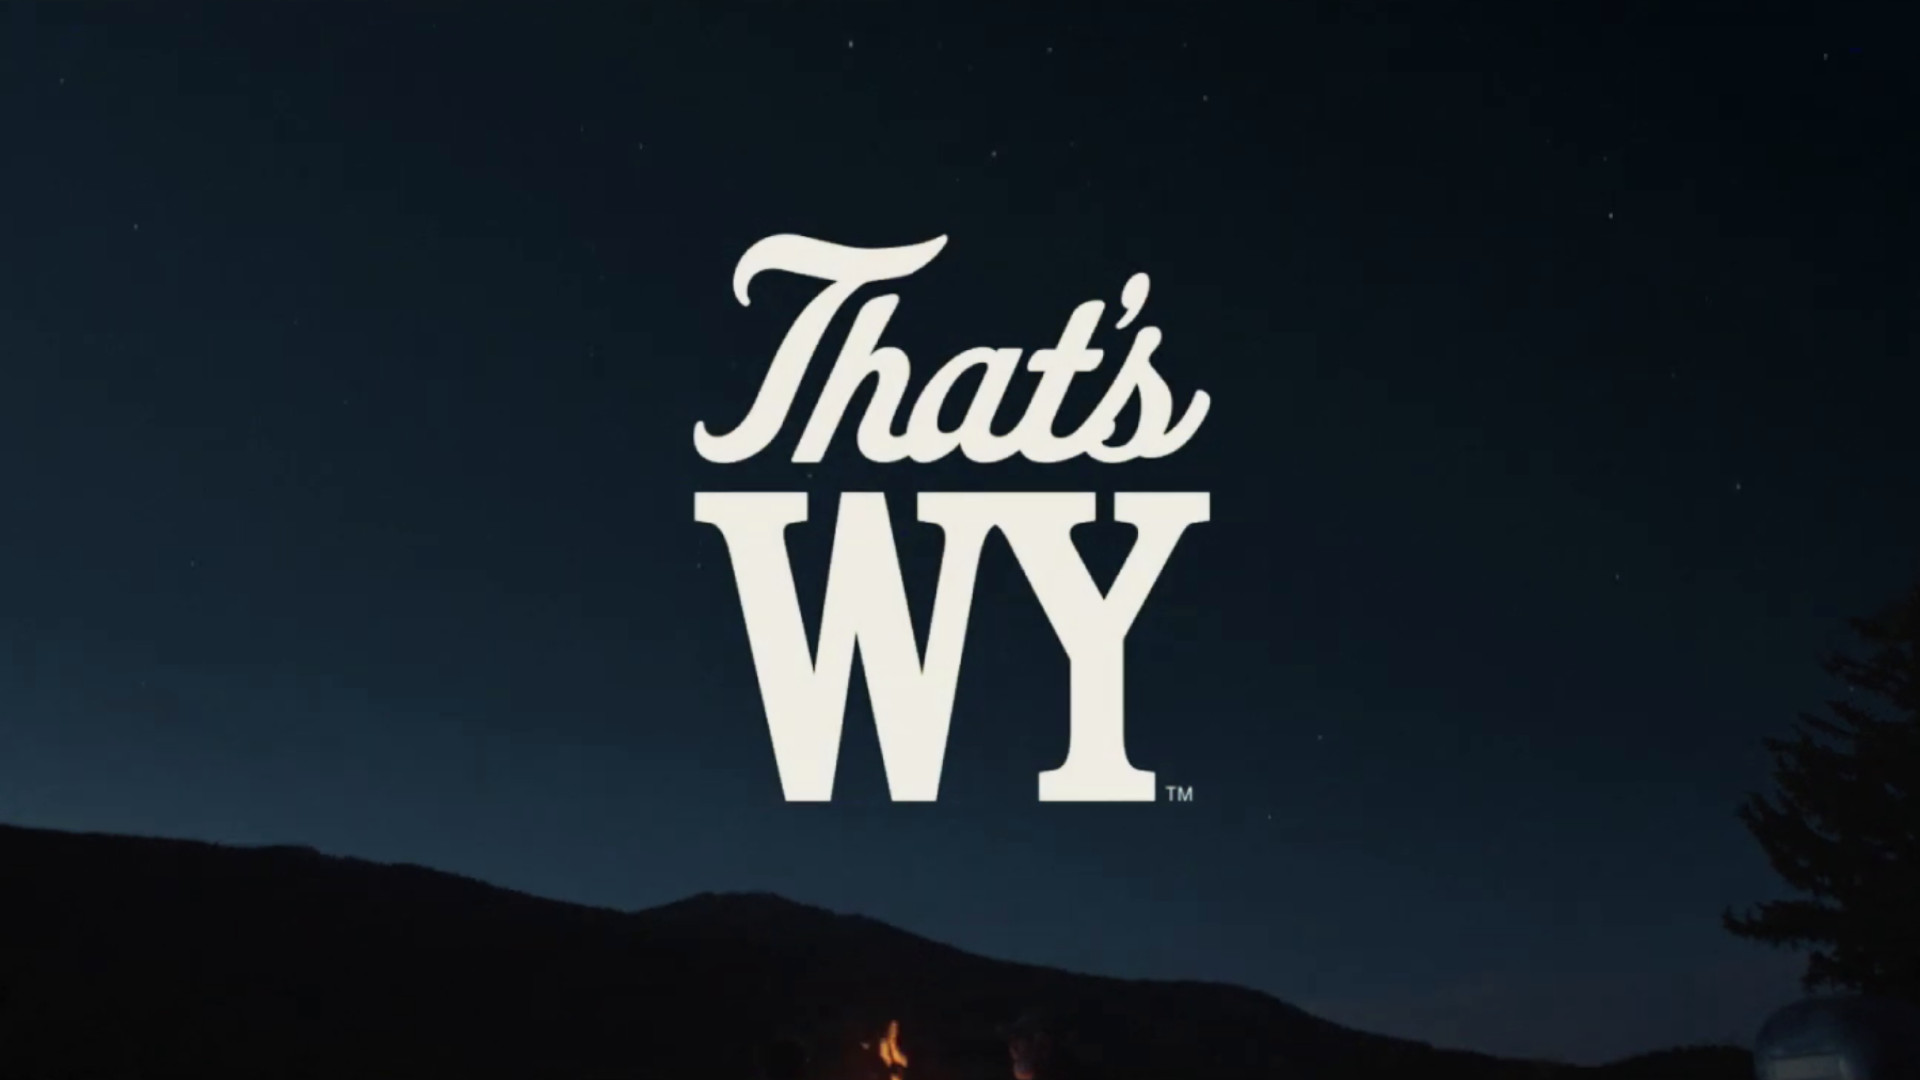 WY Responsible, Wyoming's Summer 2021 Travel Campaign